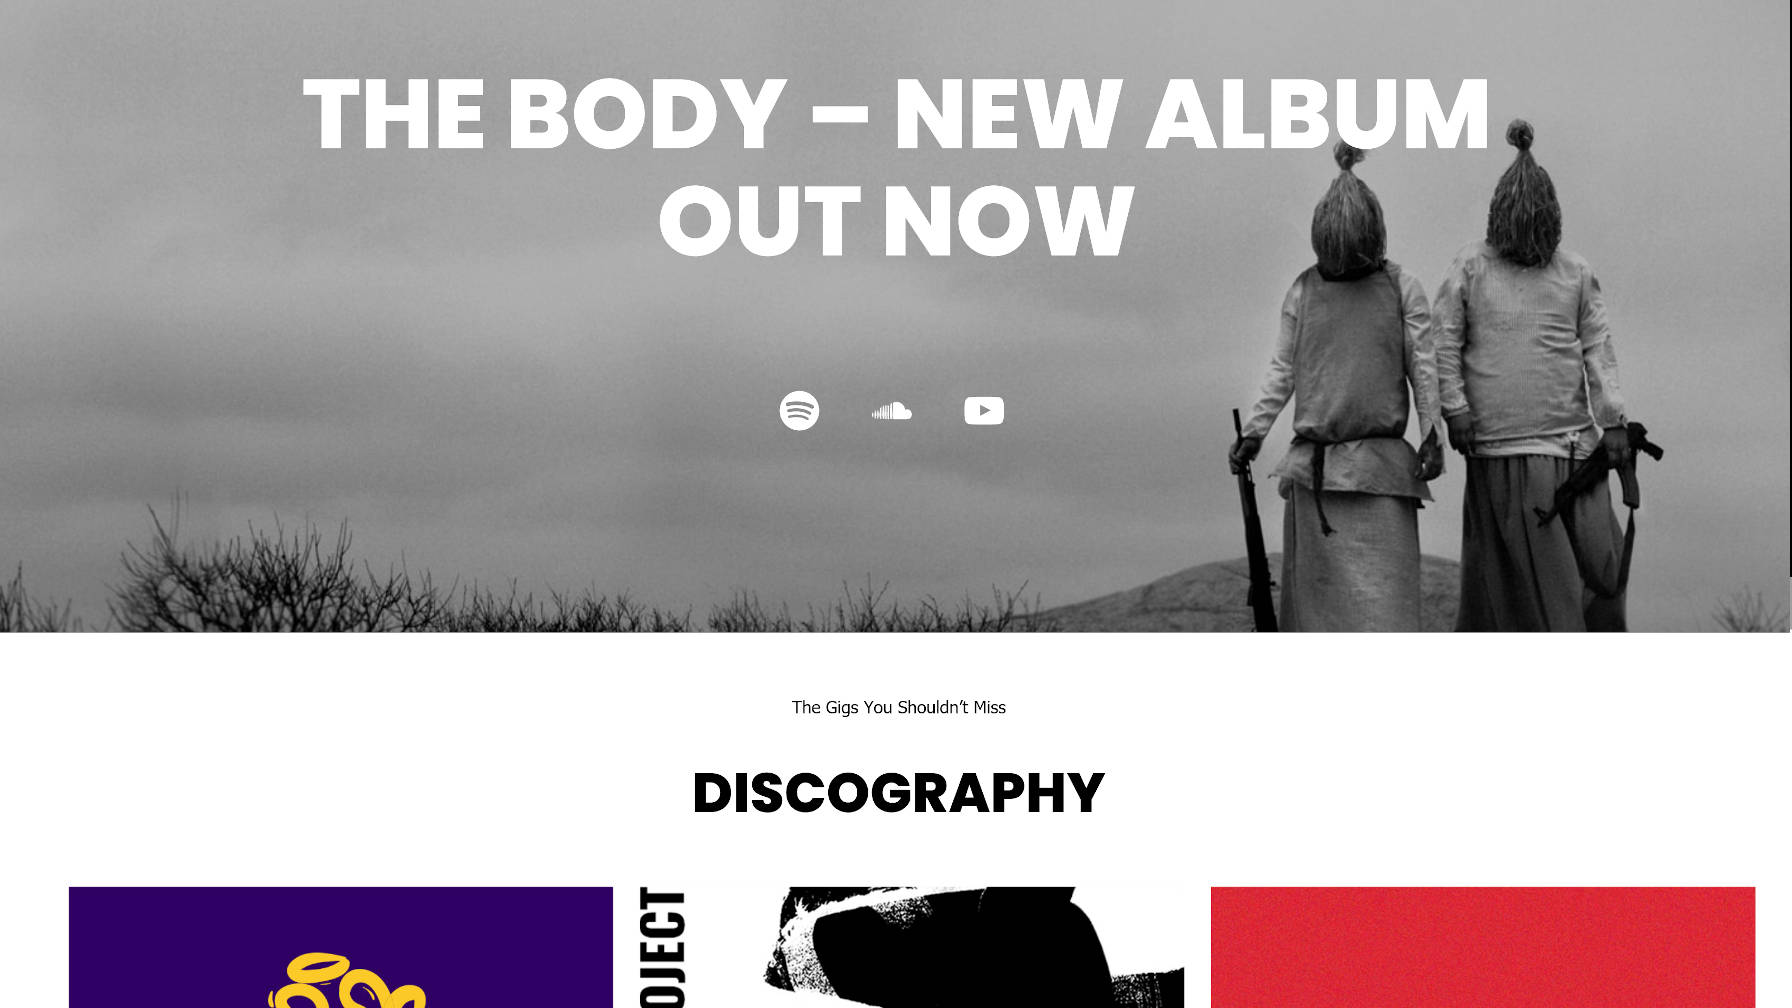 Recreating the Music Artist WordPress Theme Homepage With the Block Editor